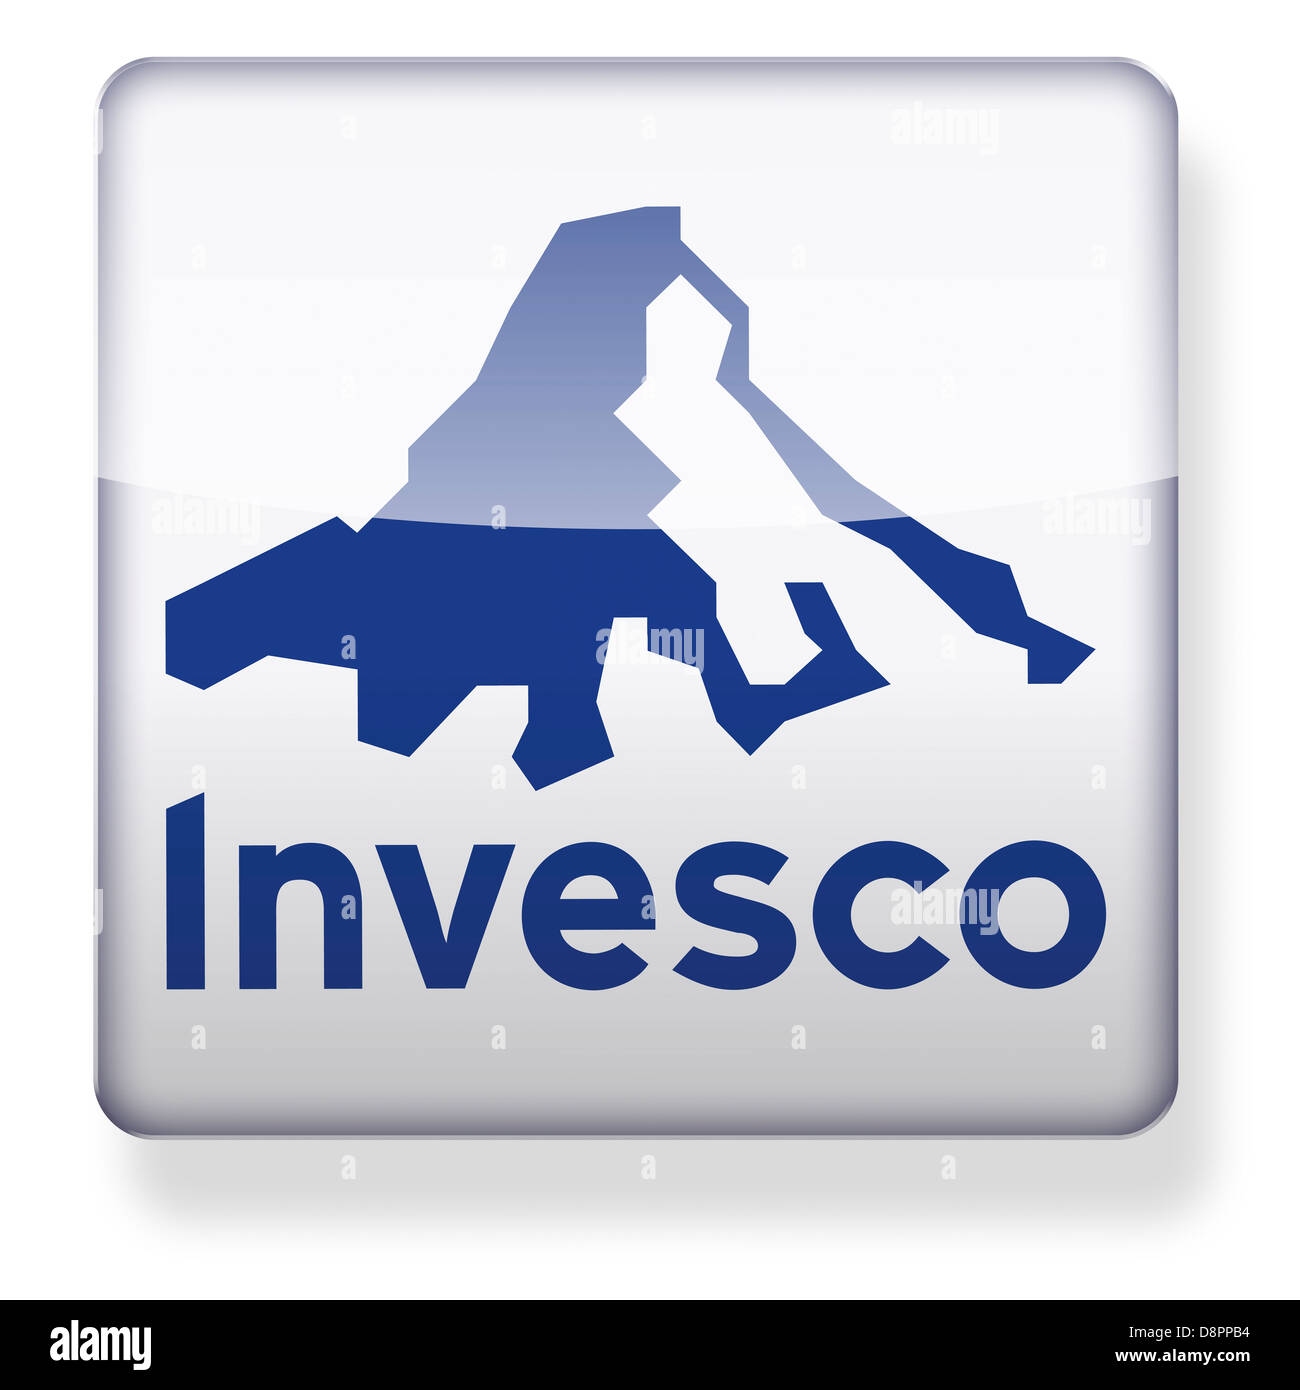 Invesco logo as an app icon. Clipping path included. - Stock Image